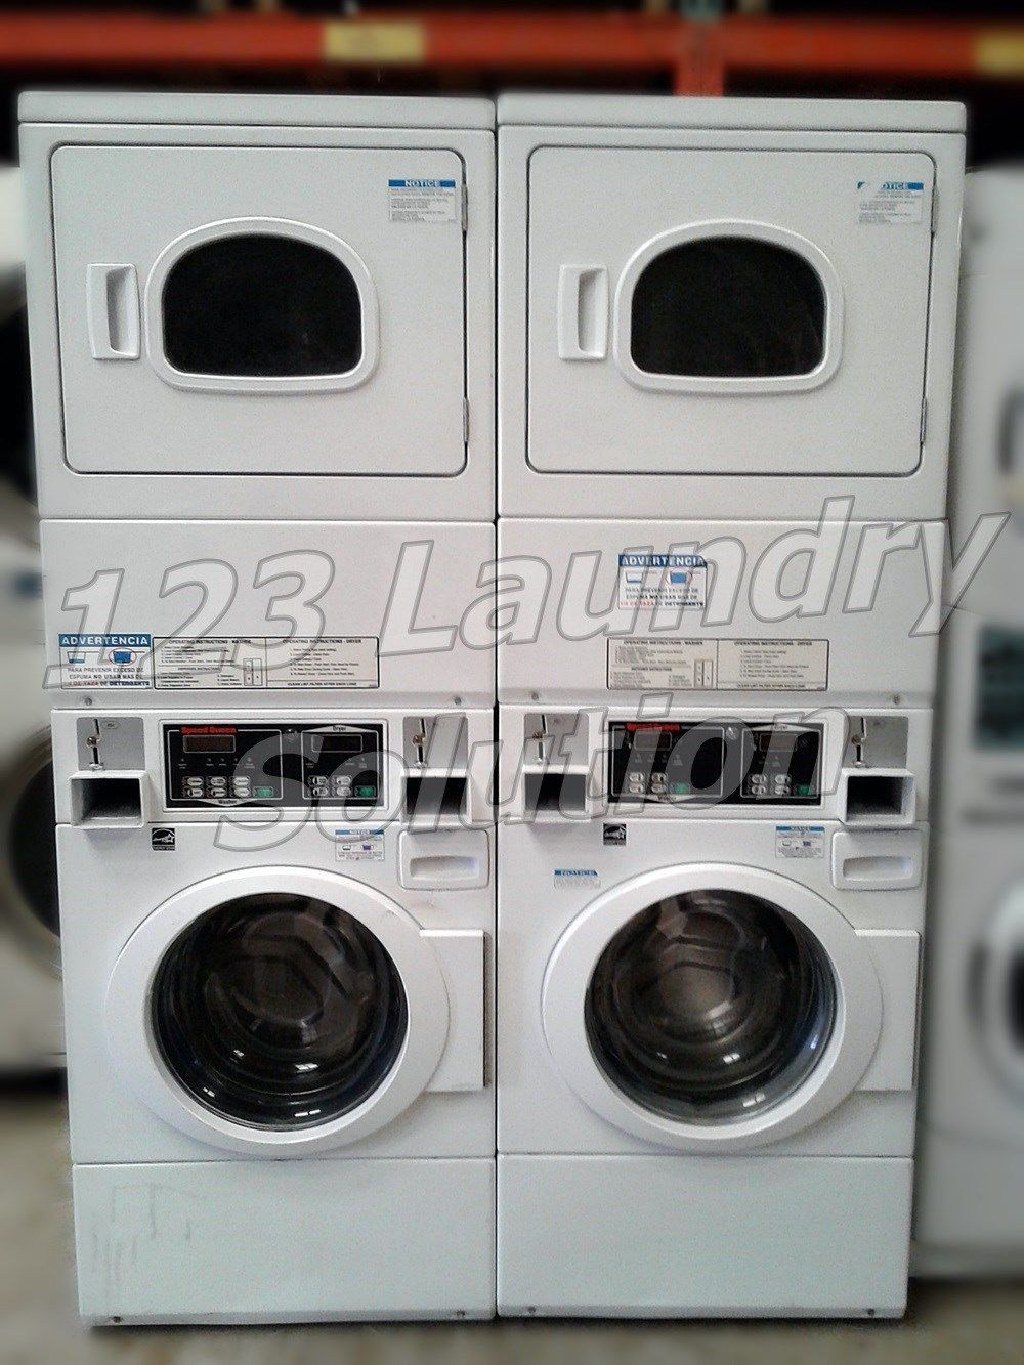 Coin Laundry Maytag Front Load Washer Coin Op Double Load 120V MHN30PDBWW 0 Used